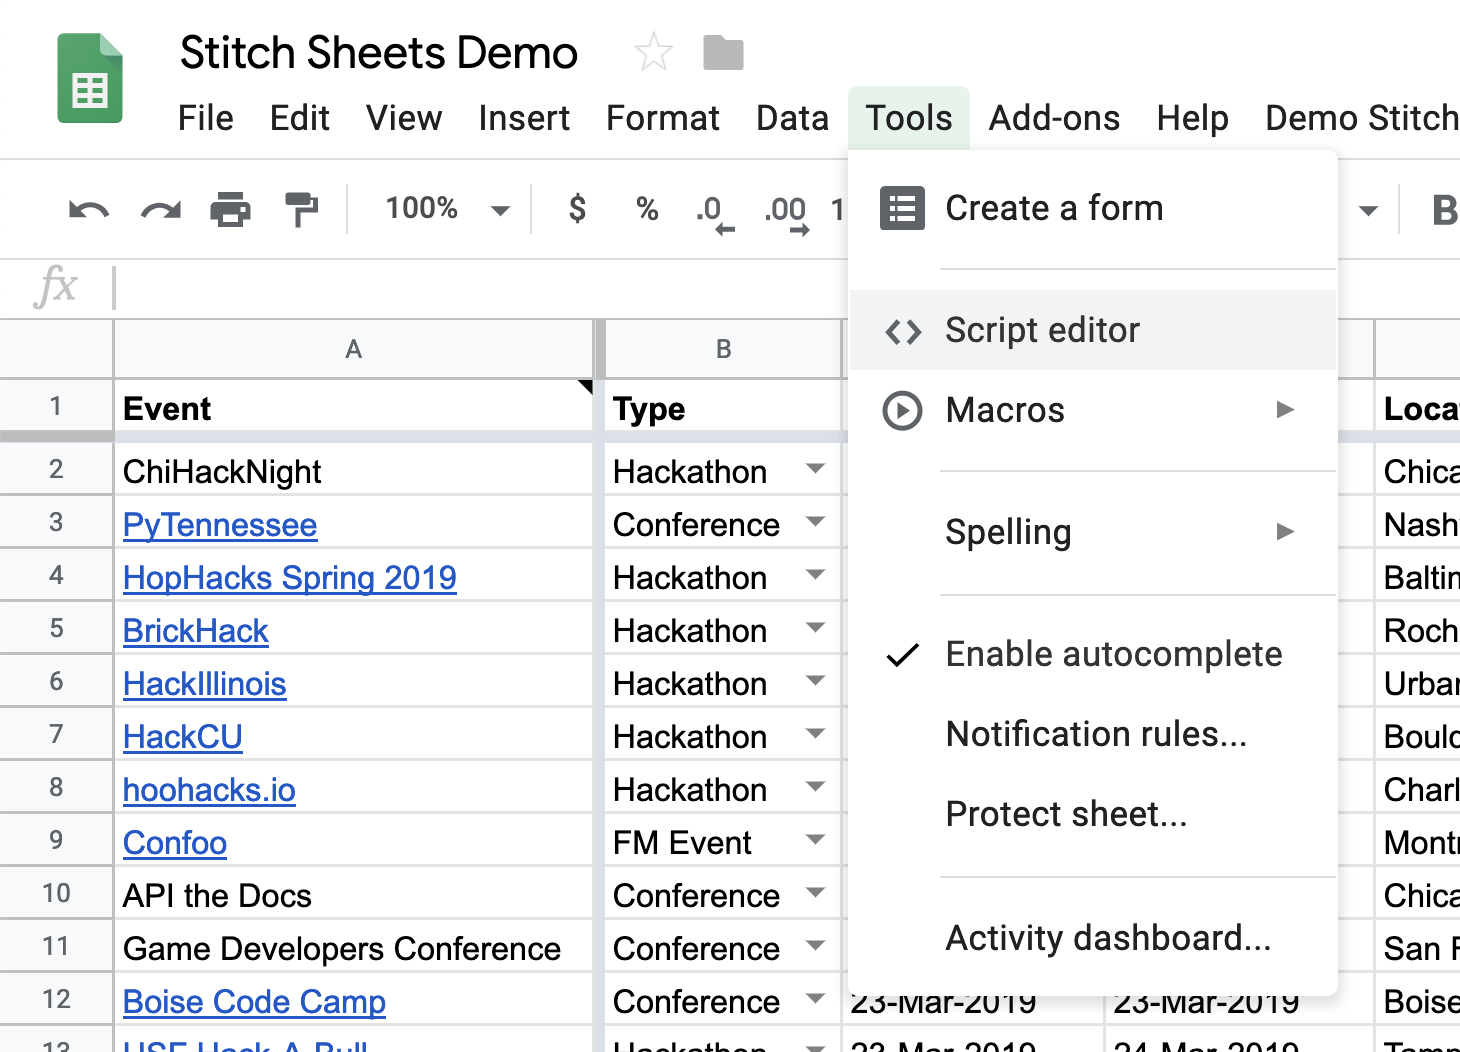 Stitching Sheets: Using MongoDB Stitch To Create An API For Data In